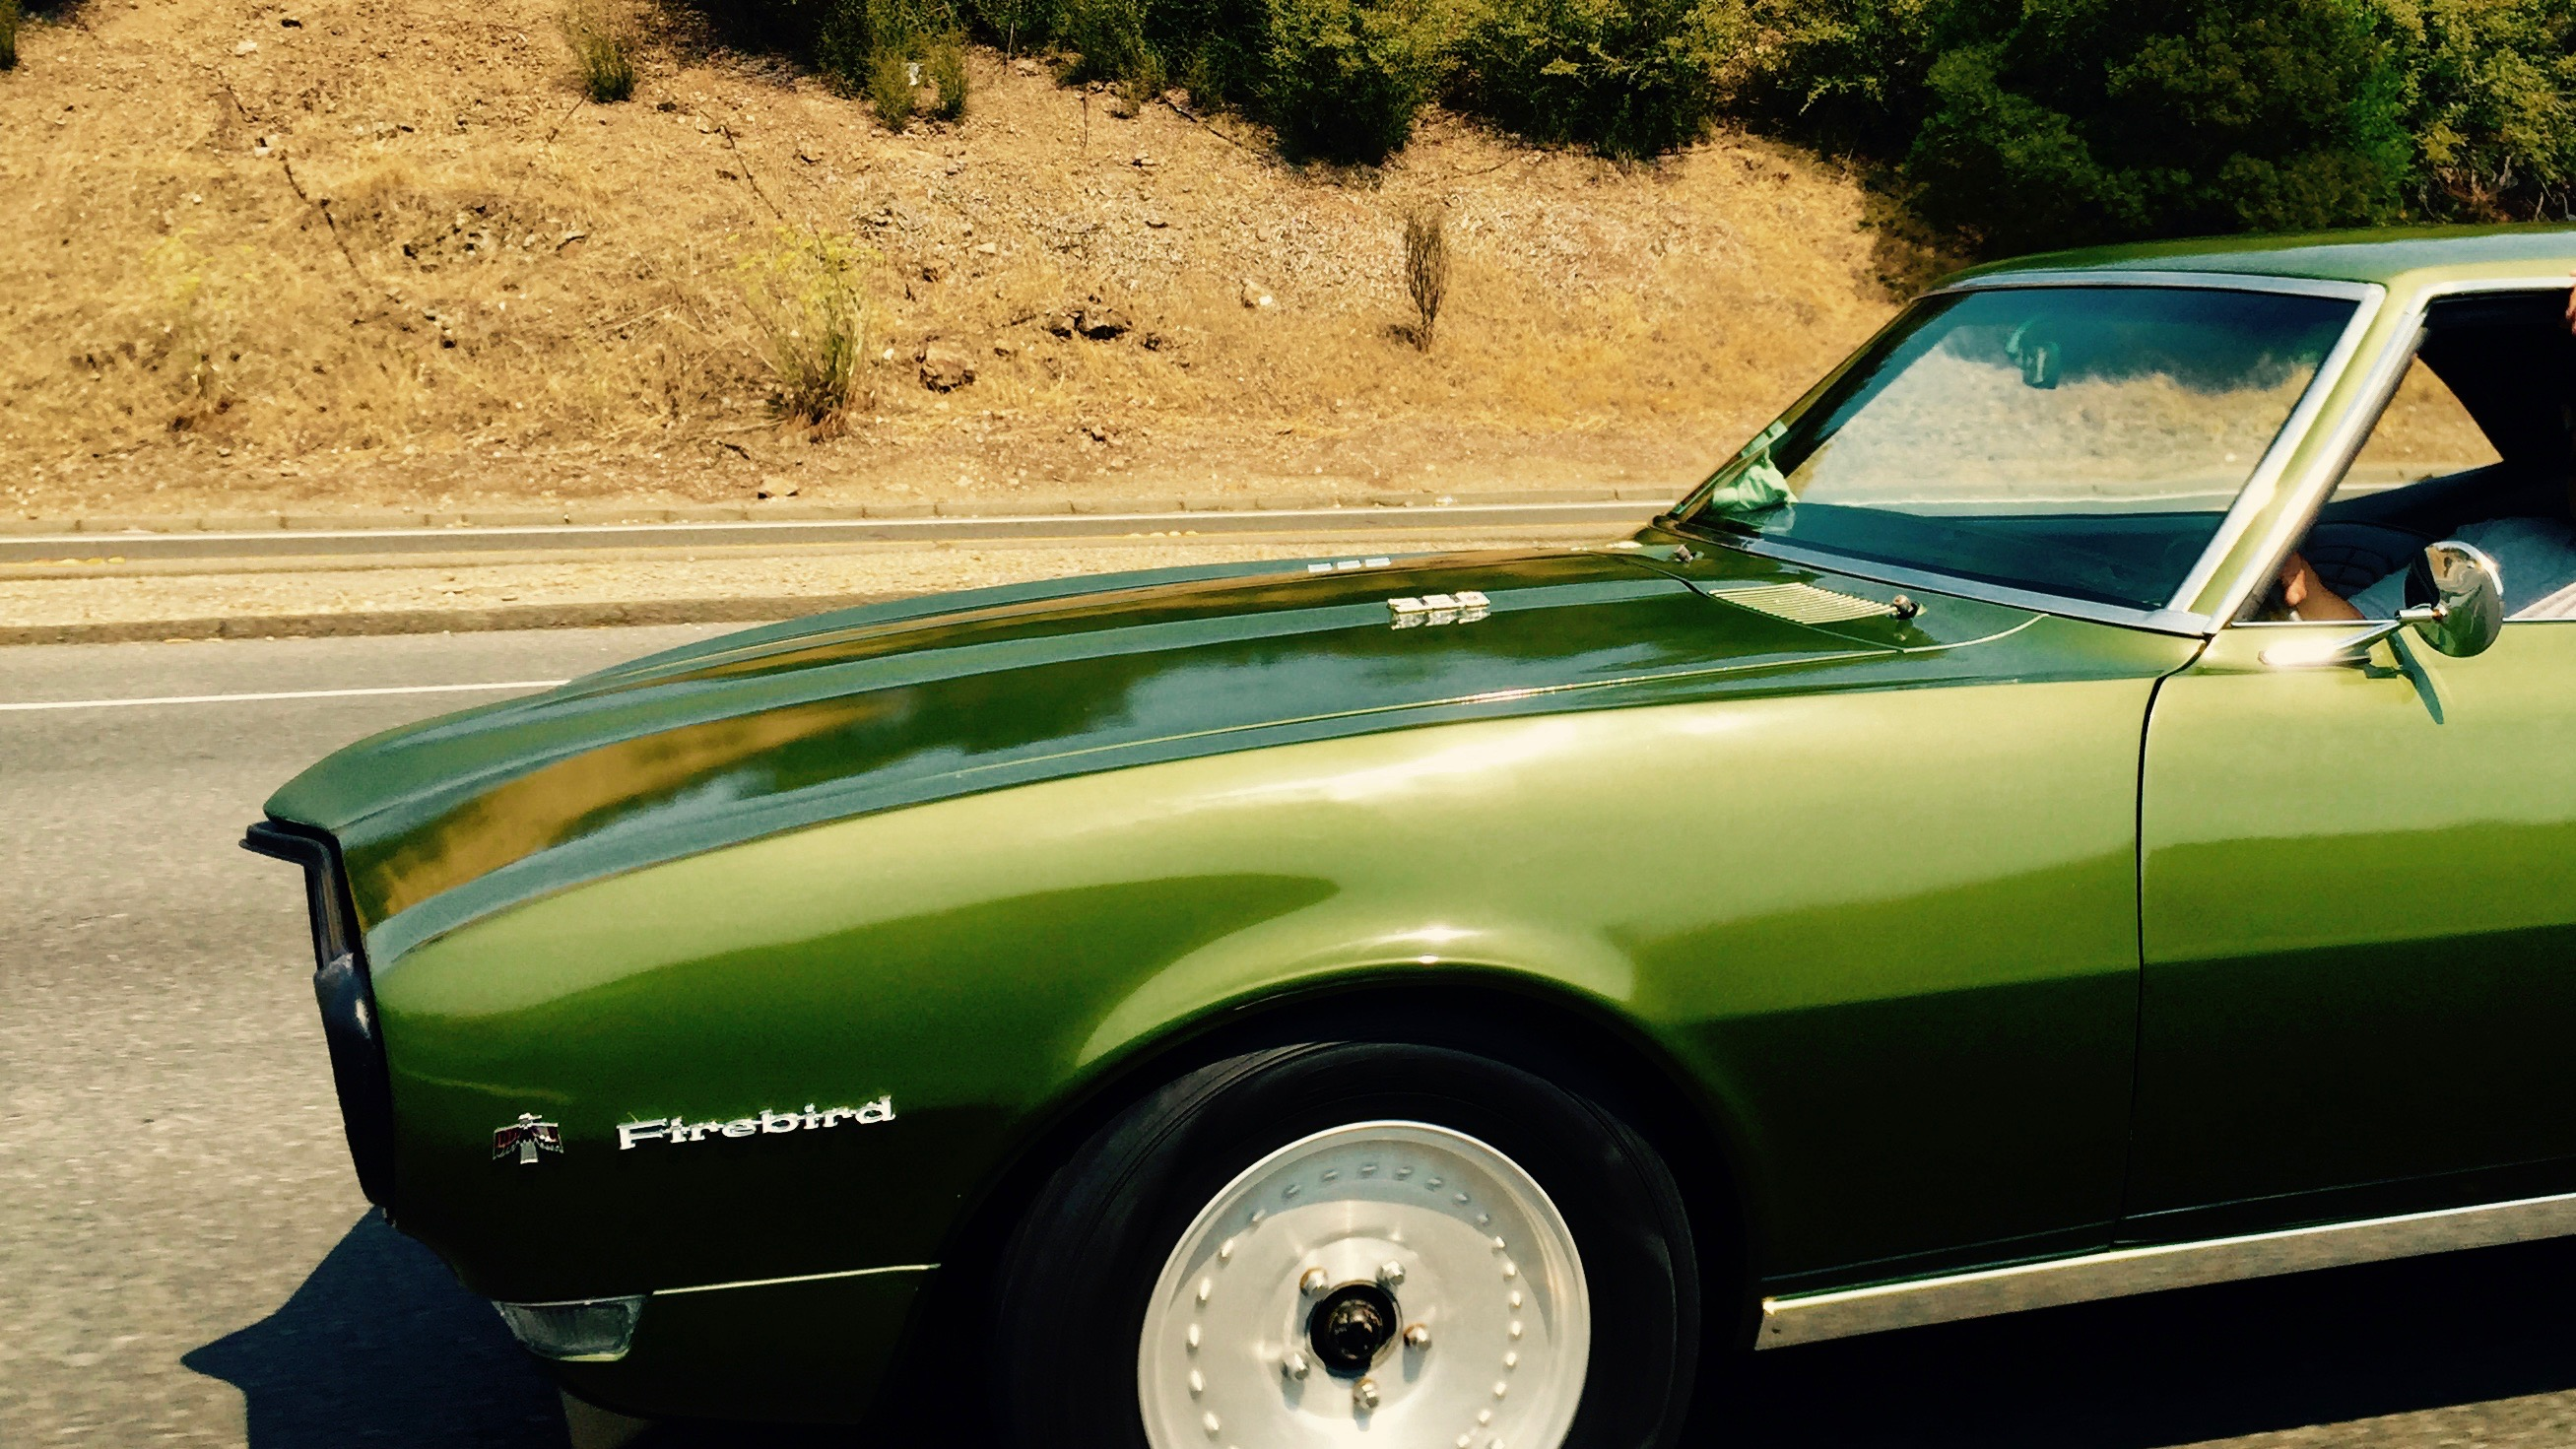 Green Firebird.